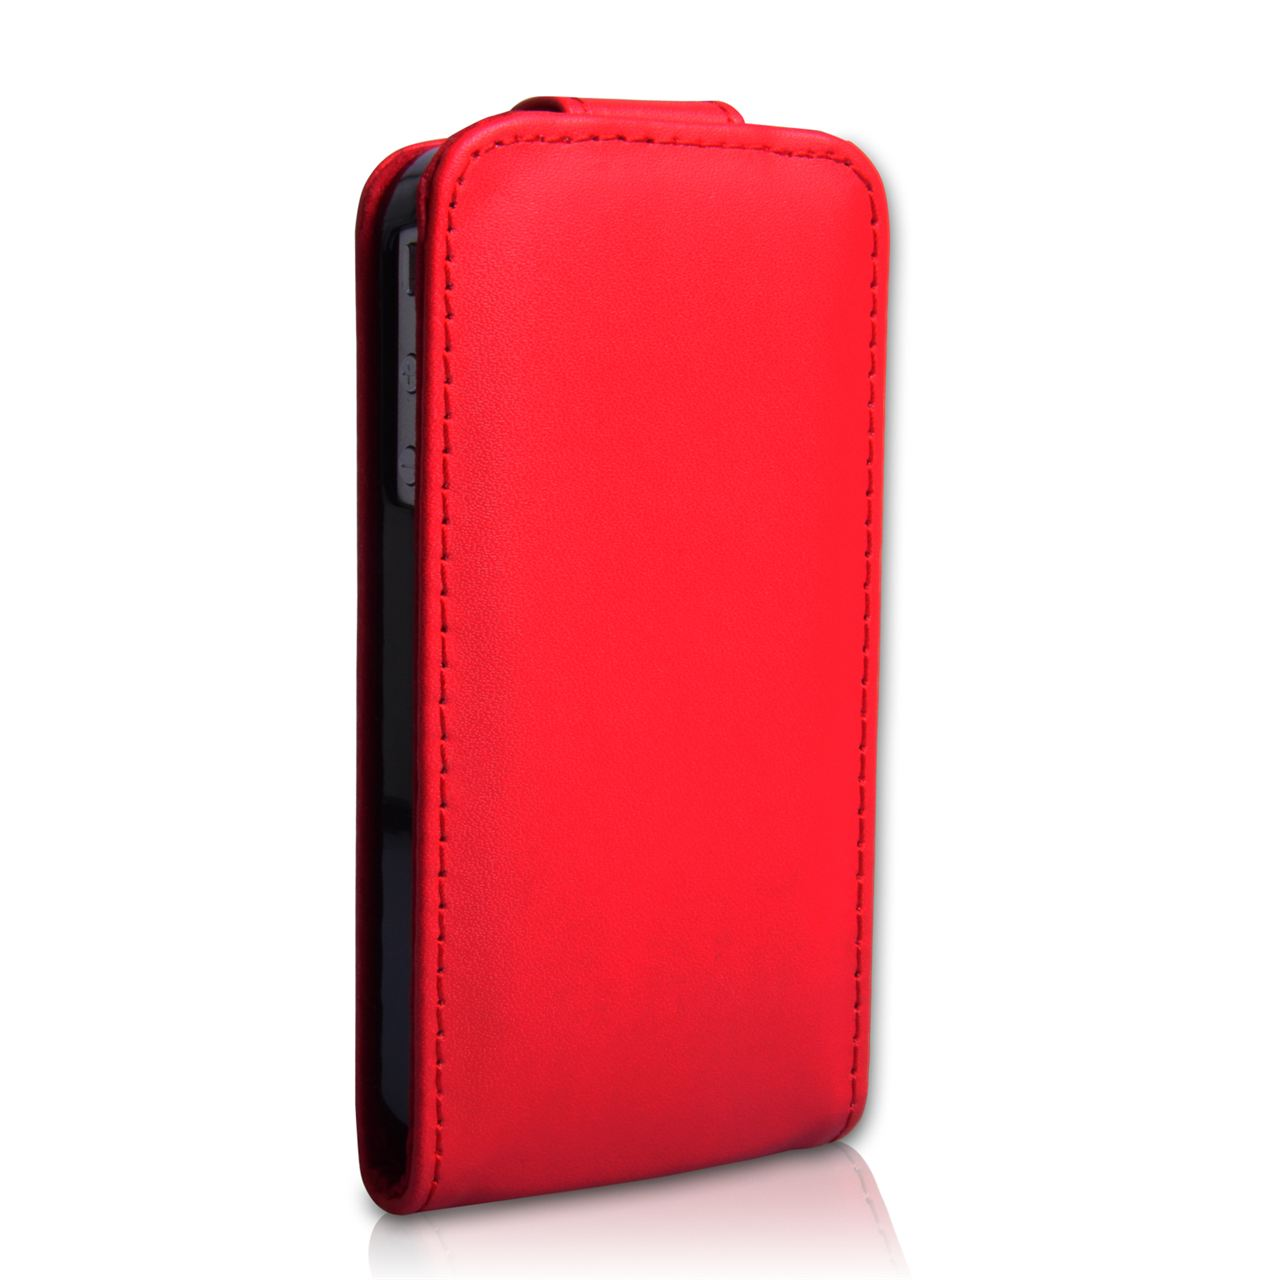 YouSave Accessories iPhone 4 / 4S Leather Effect Flip Case - Red